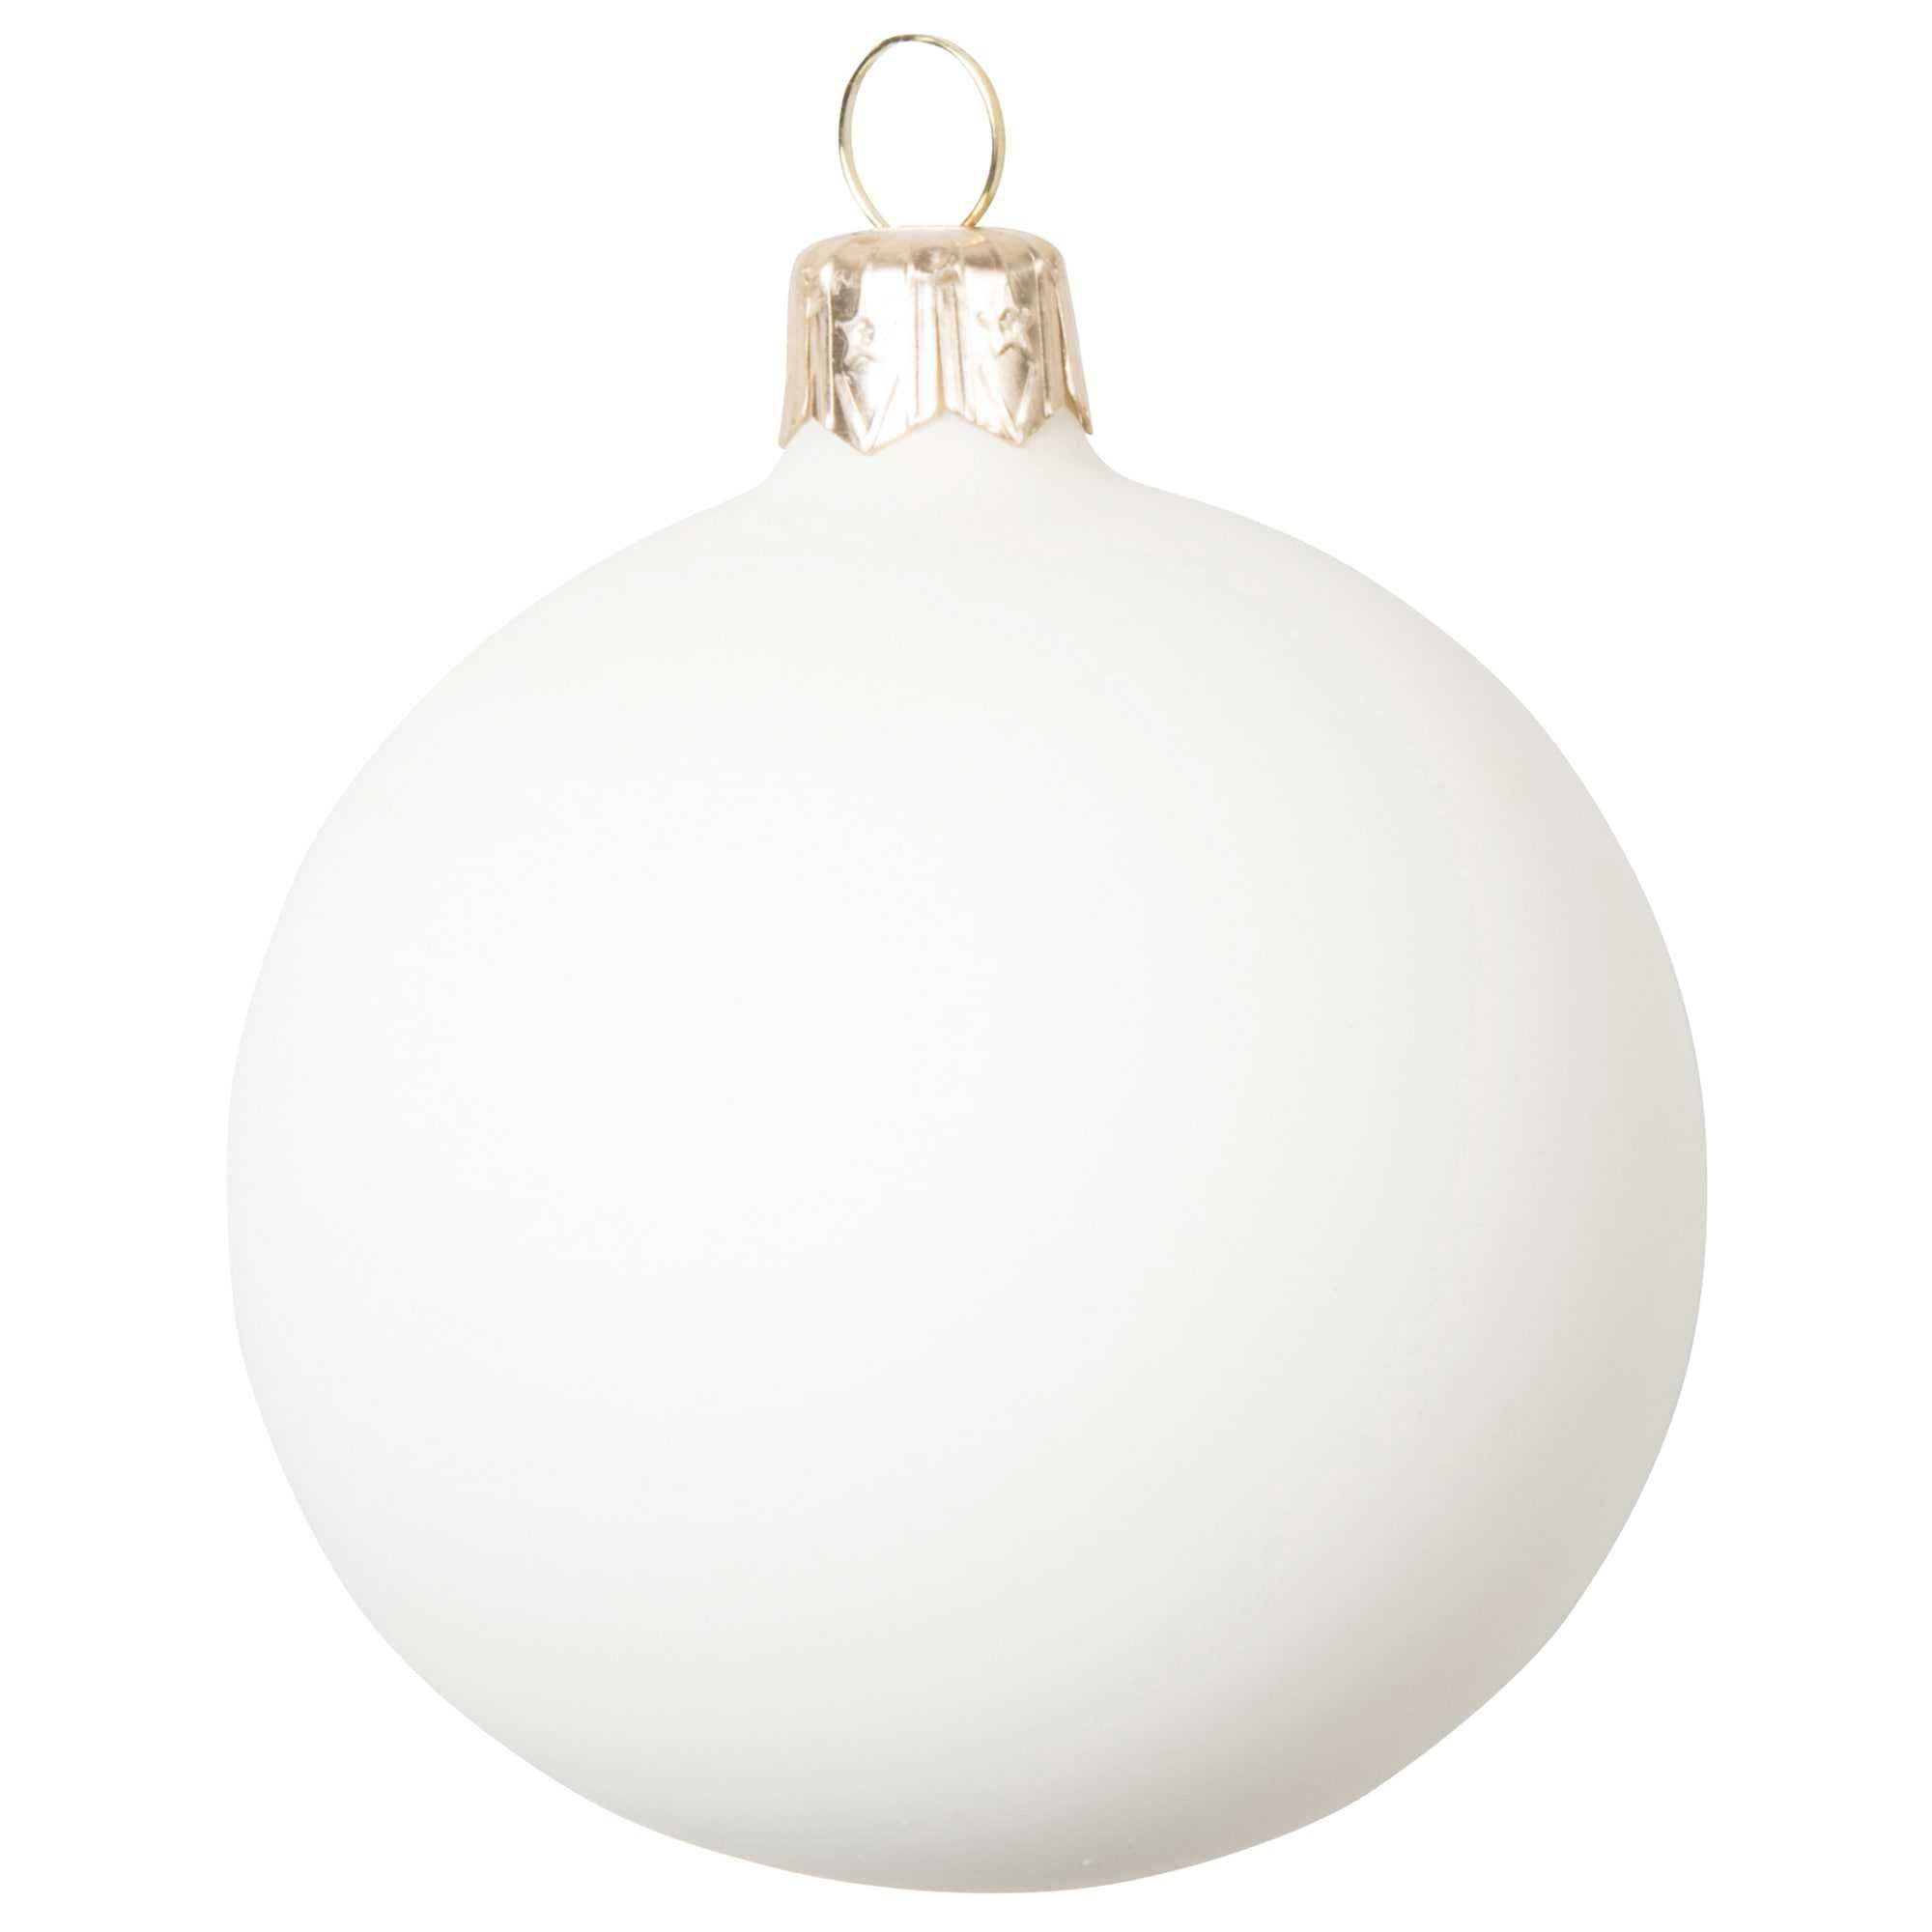 Boule de no l blanc mat en verre 7 cm vendu par 12 christmas time happy and chimney times - Boule de noel blanche ...